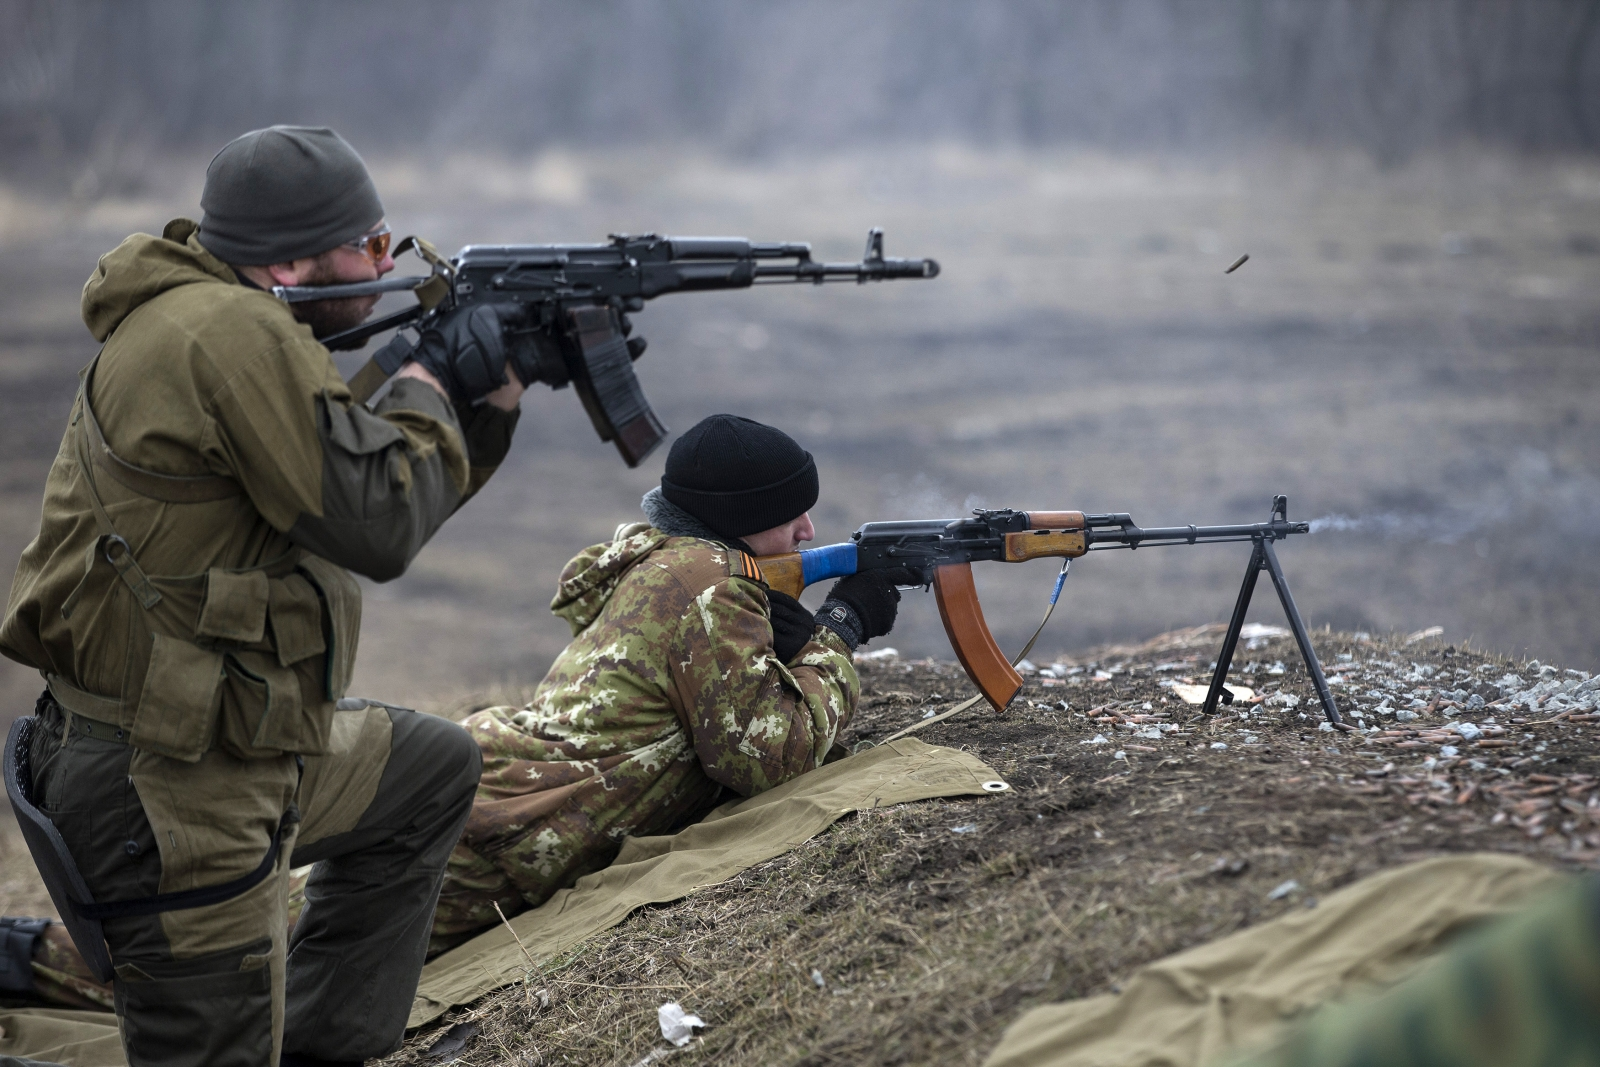 Ukraine pro-Russian rebels